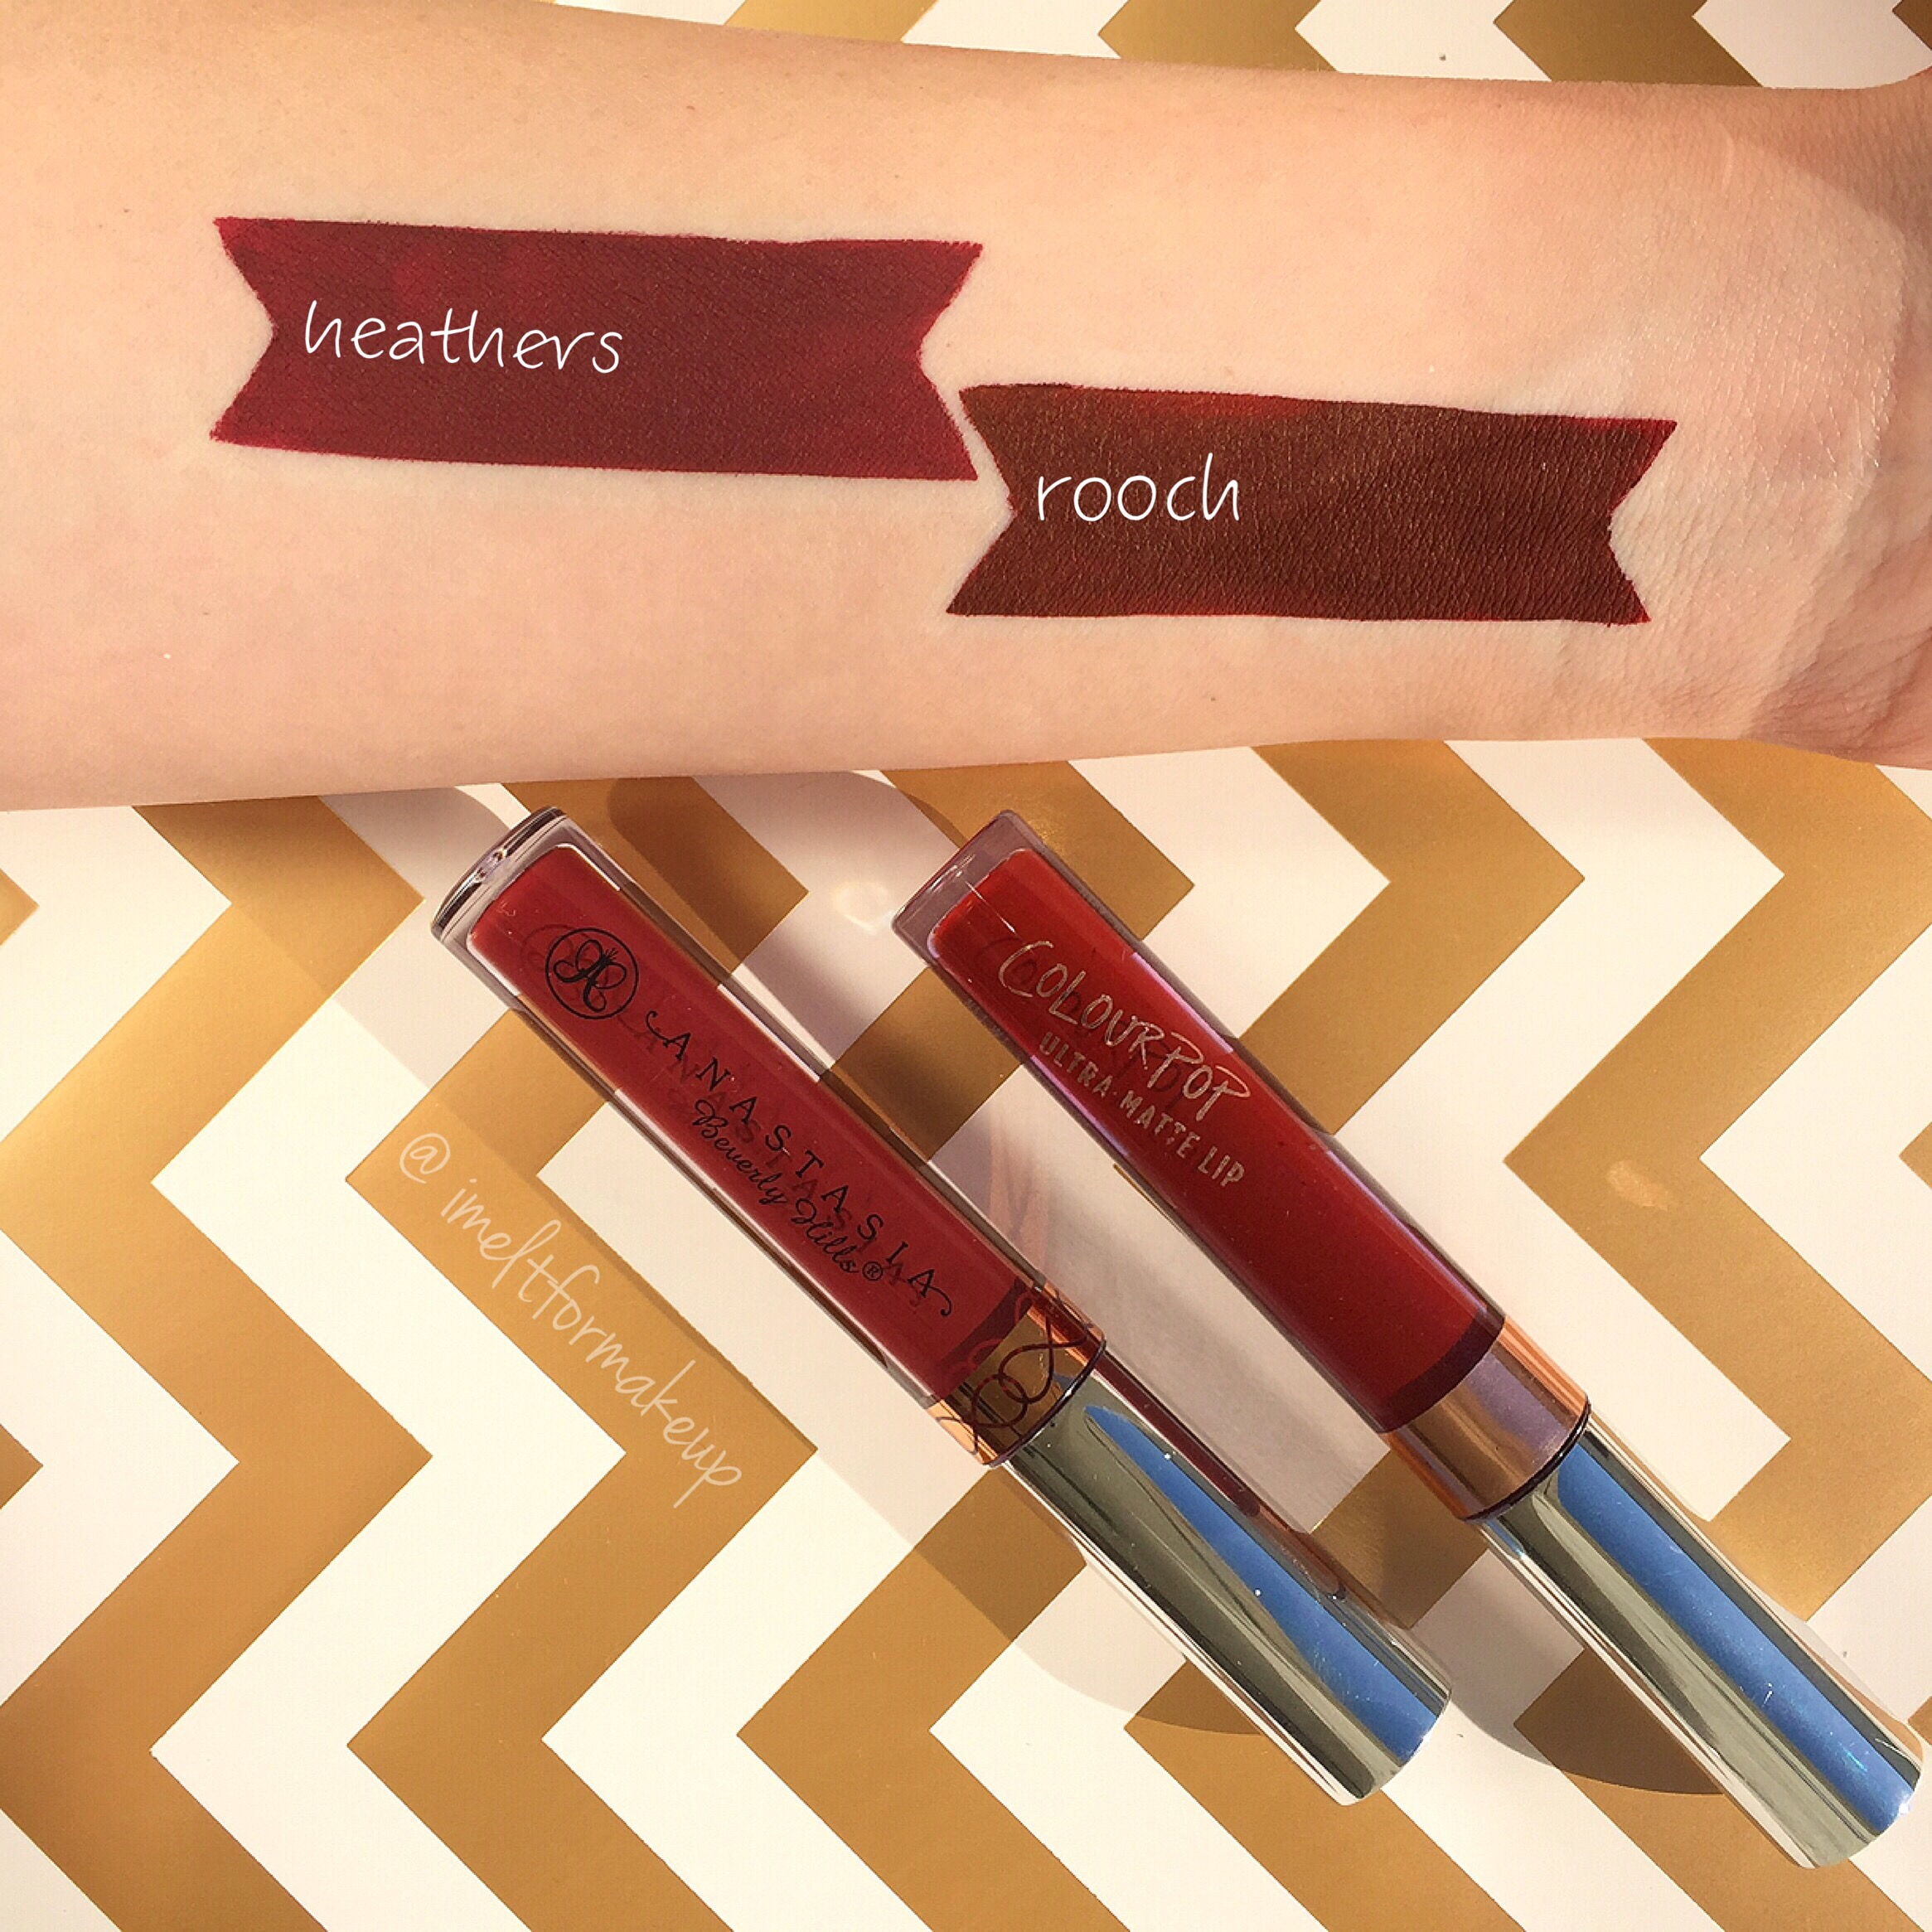 Anastasia Beverly Hills Heathers vs Colourpop Rooch Swatch